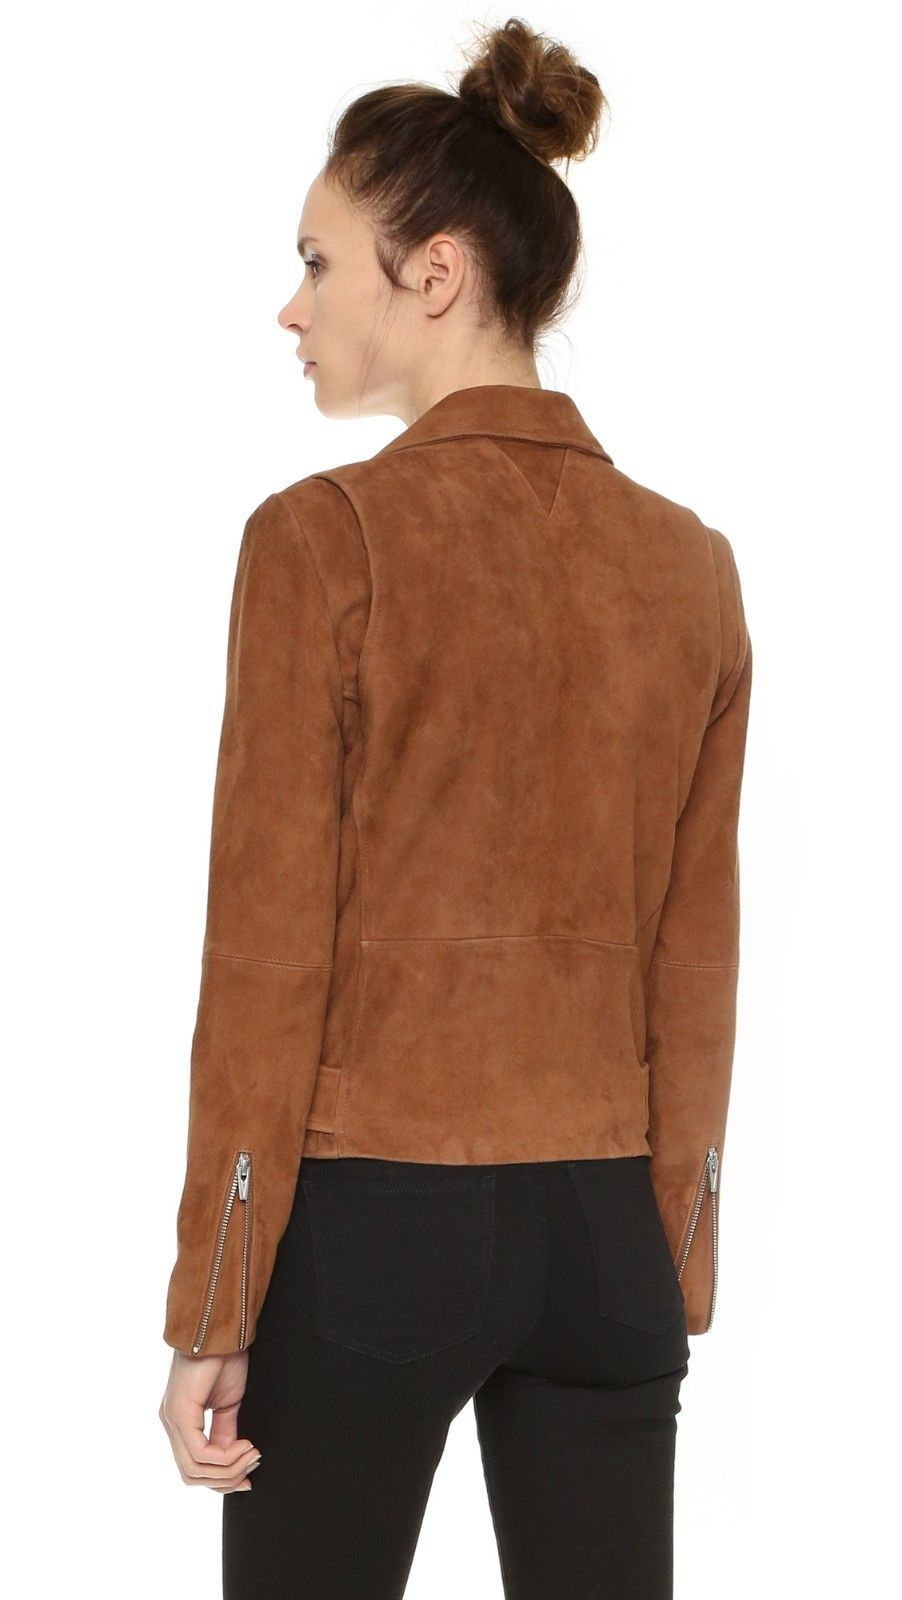 Handmade Women Brown Suede Leather Jacket,Women Slim Fit Biker Motorcycle Jacket